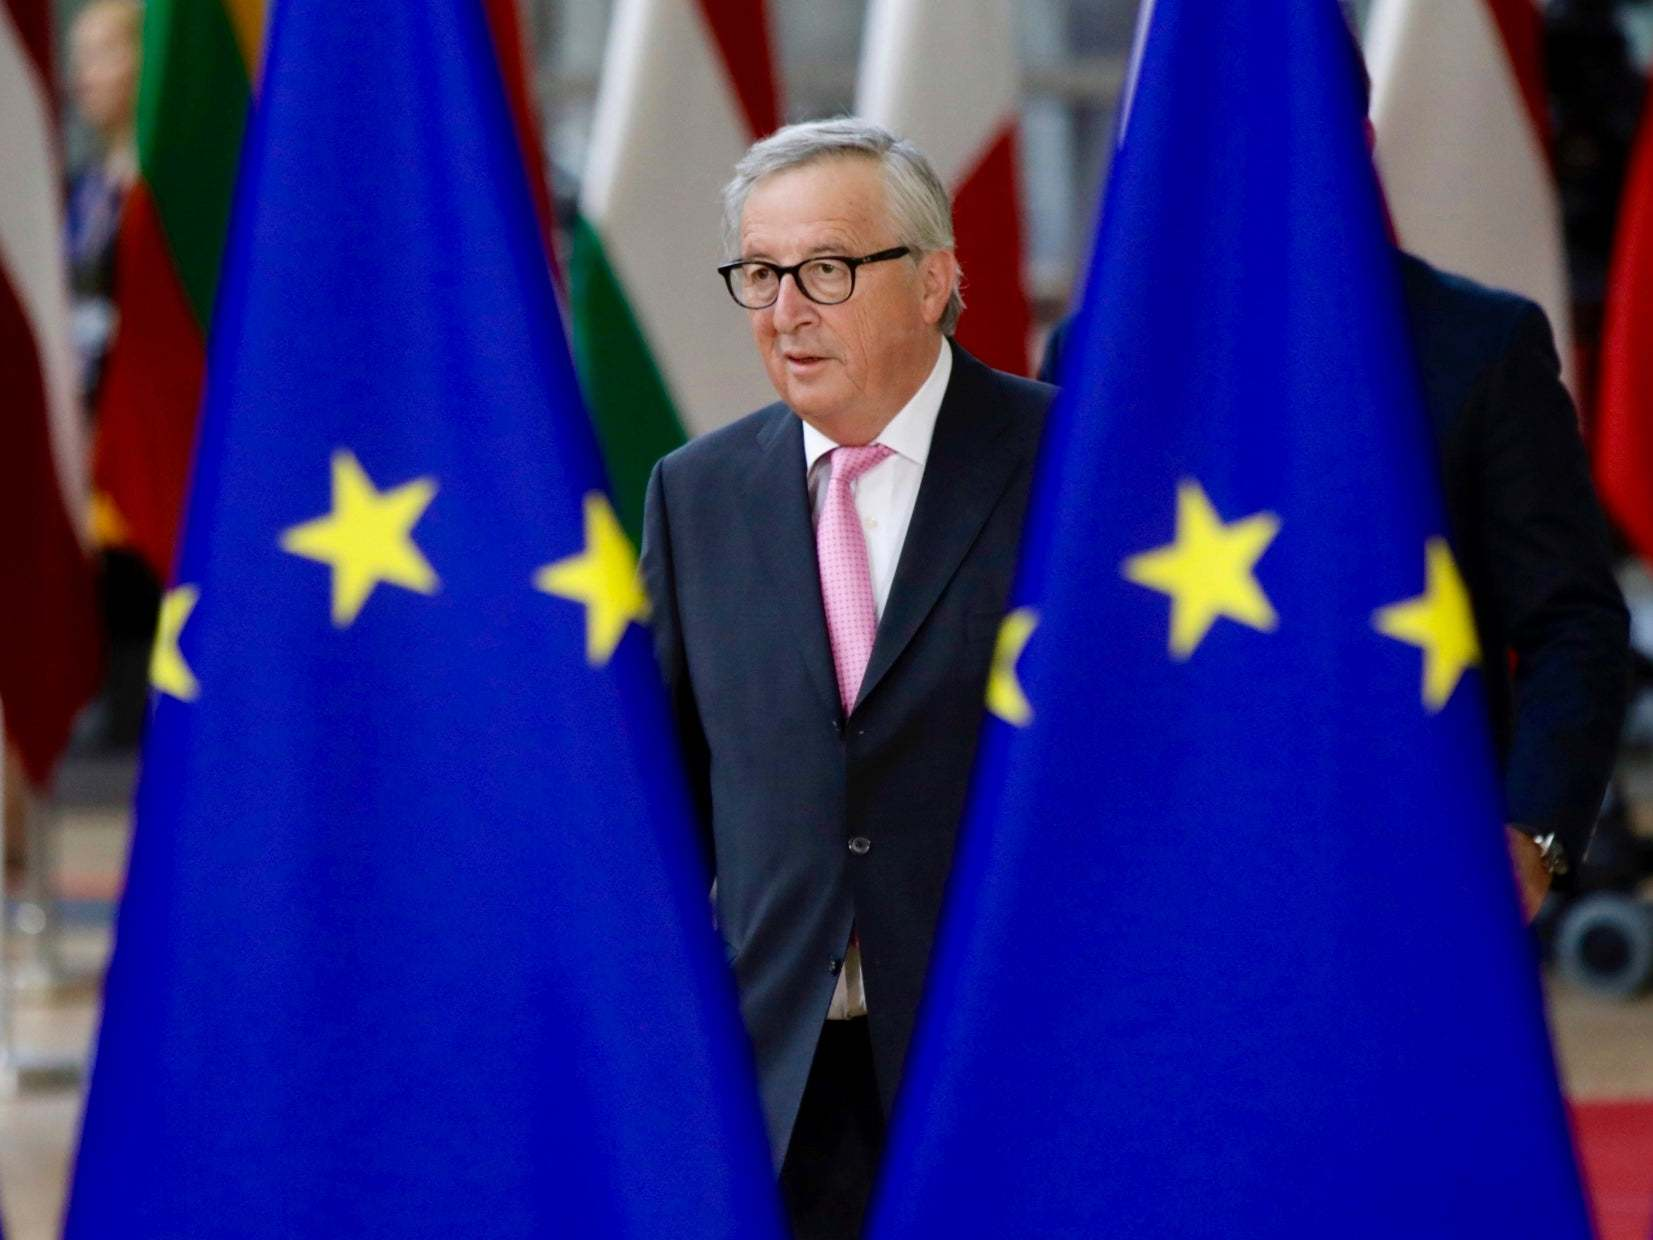 Boris Johnson will 'probably not' ask for Brexit extension, EU president Jean-Claude Juncker says